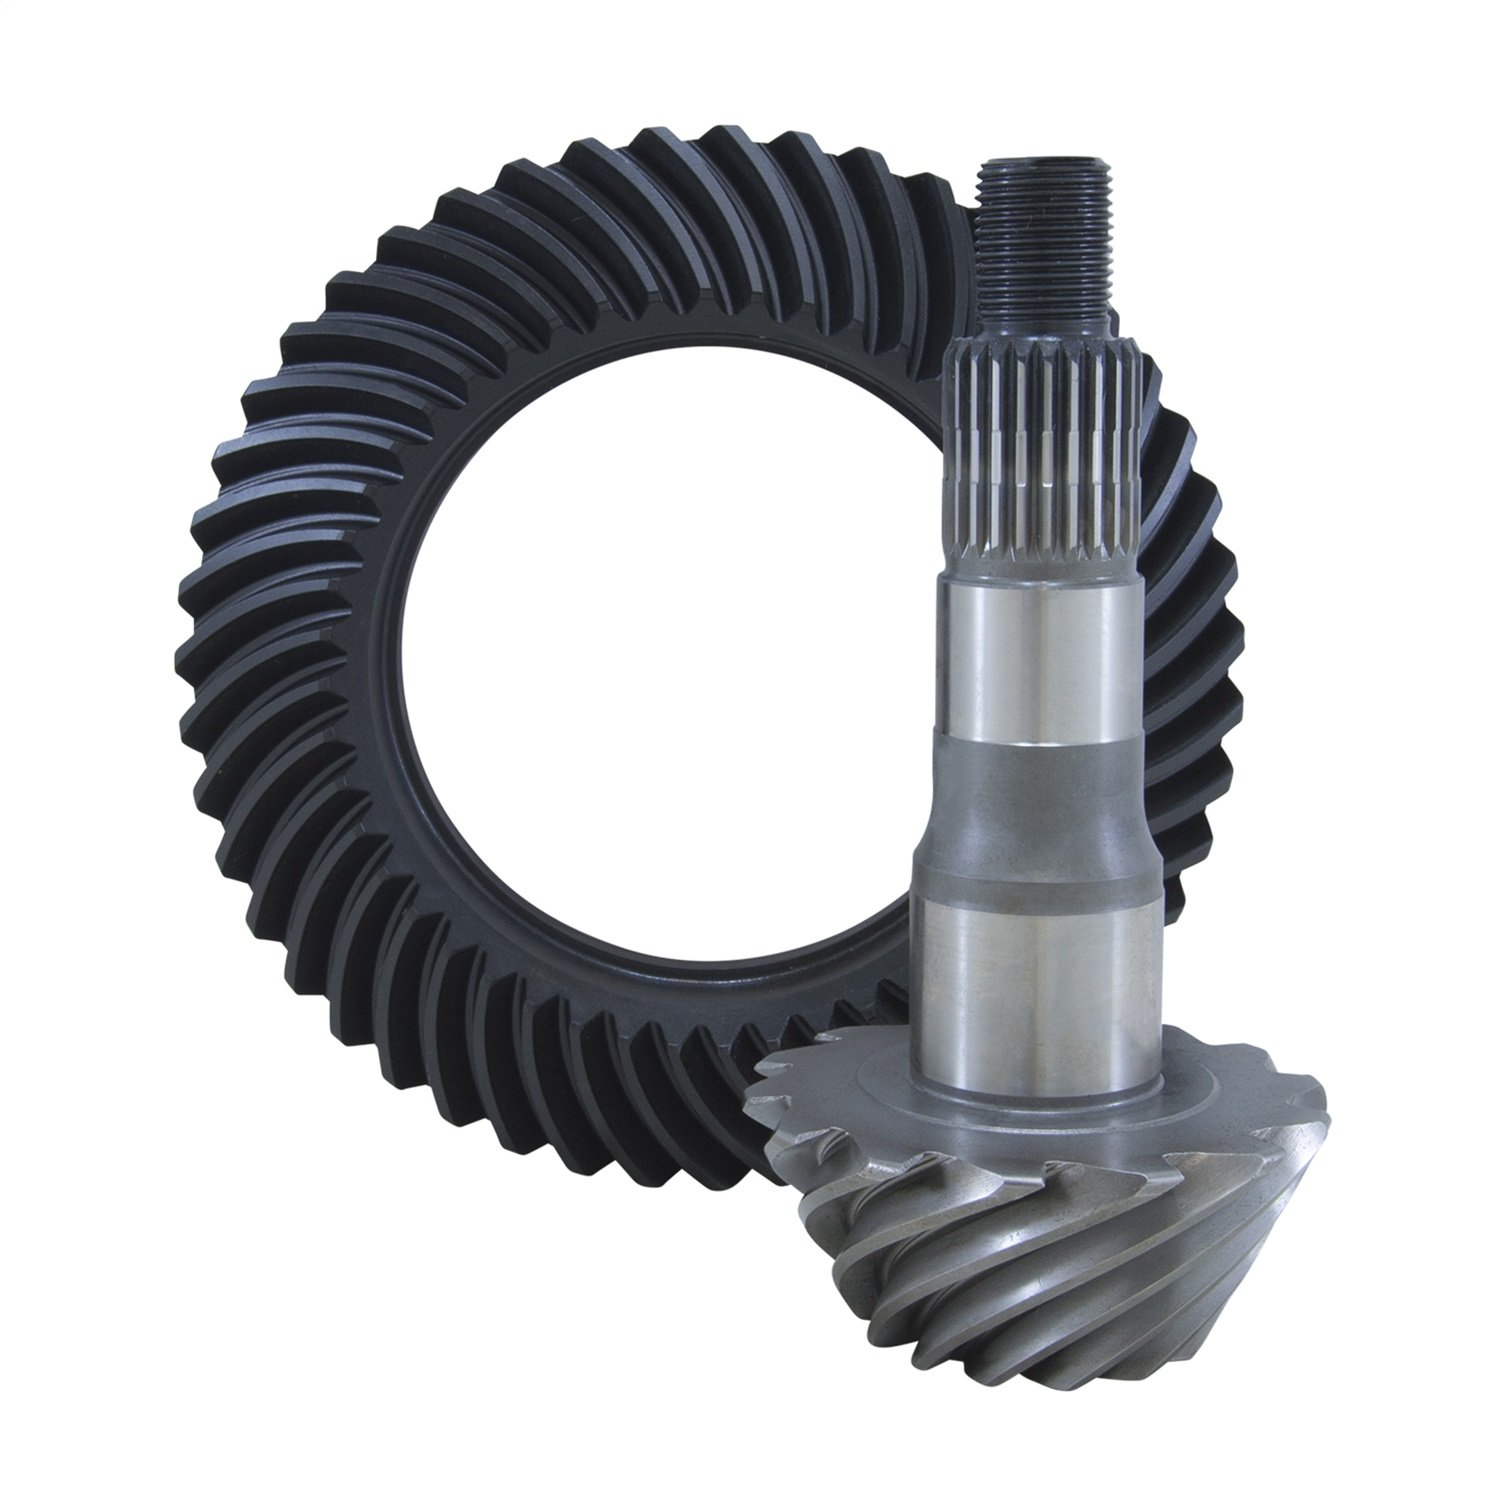 Yukon Gear YG NM205R-411R Ring & Pinion Gear Set for Nissan M205 Front Differential, 4.11 Ratio